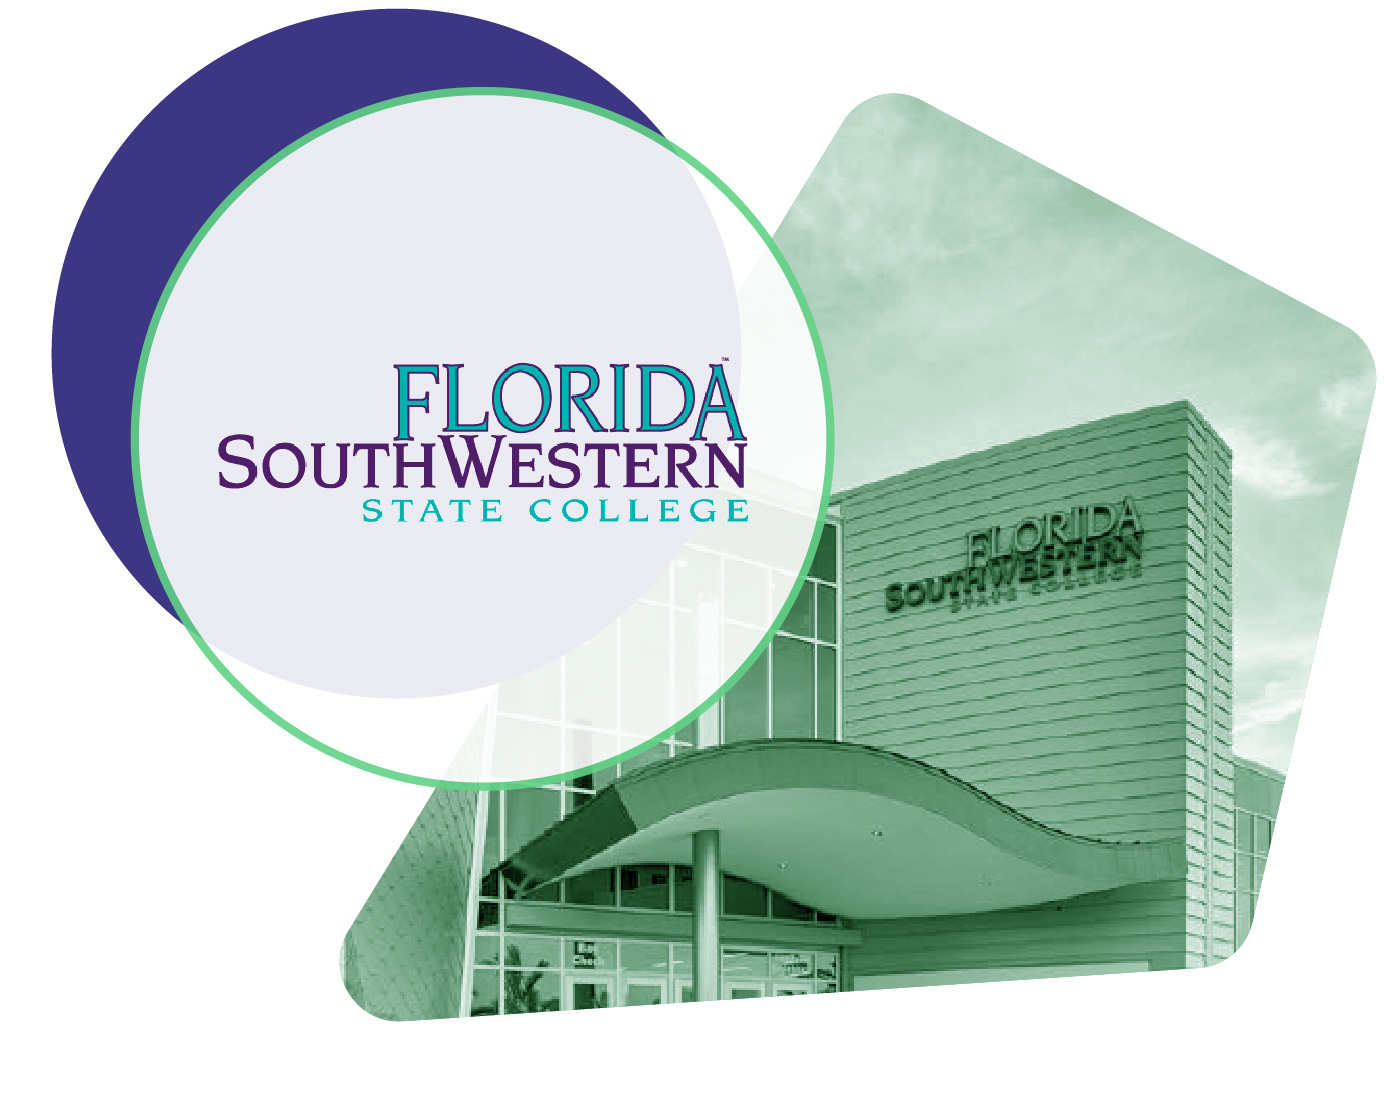 Florida SouthWestern State College logo and student image